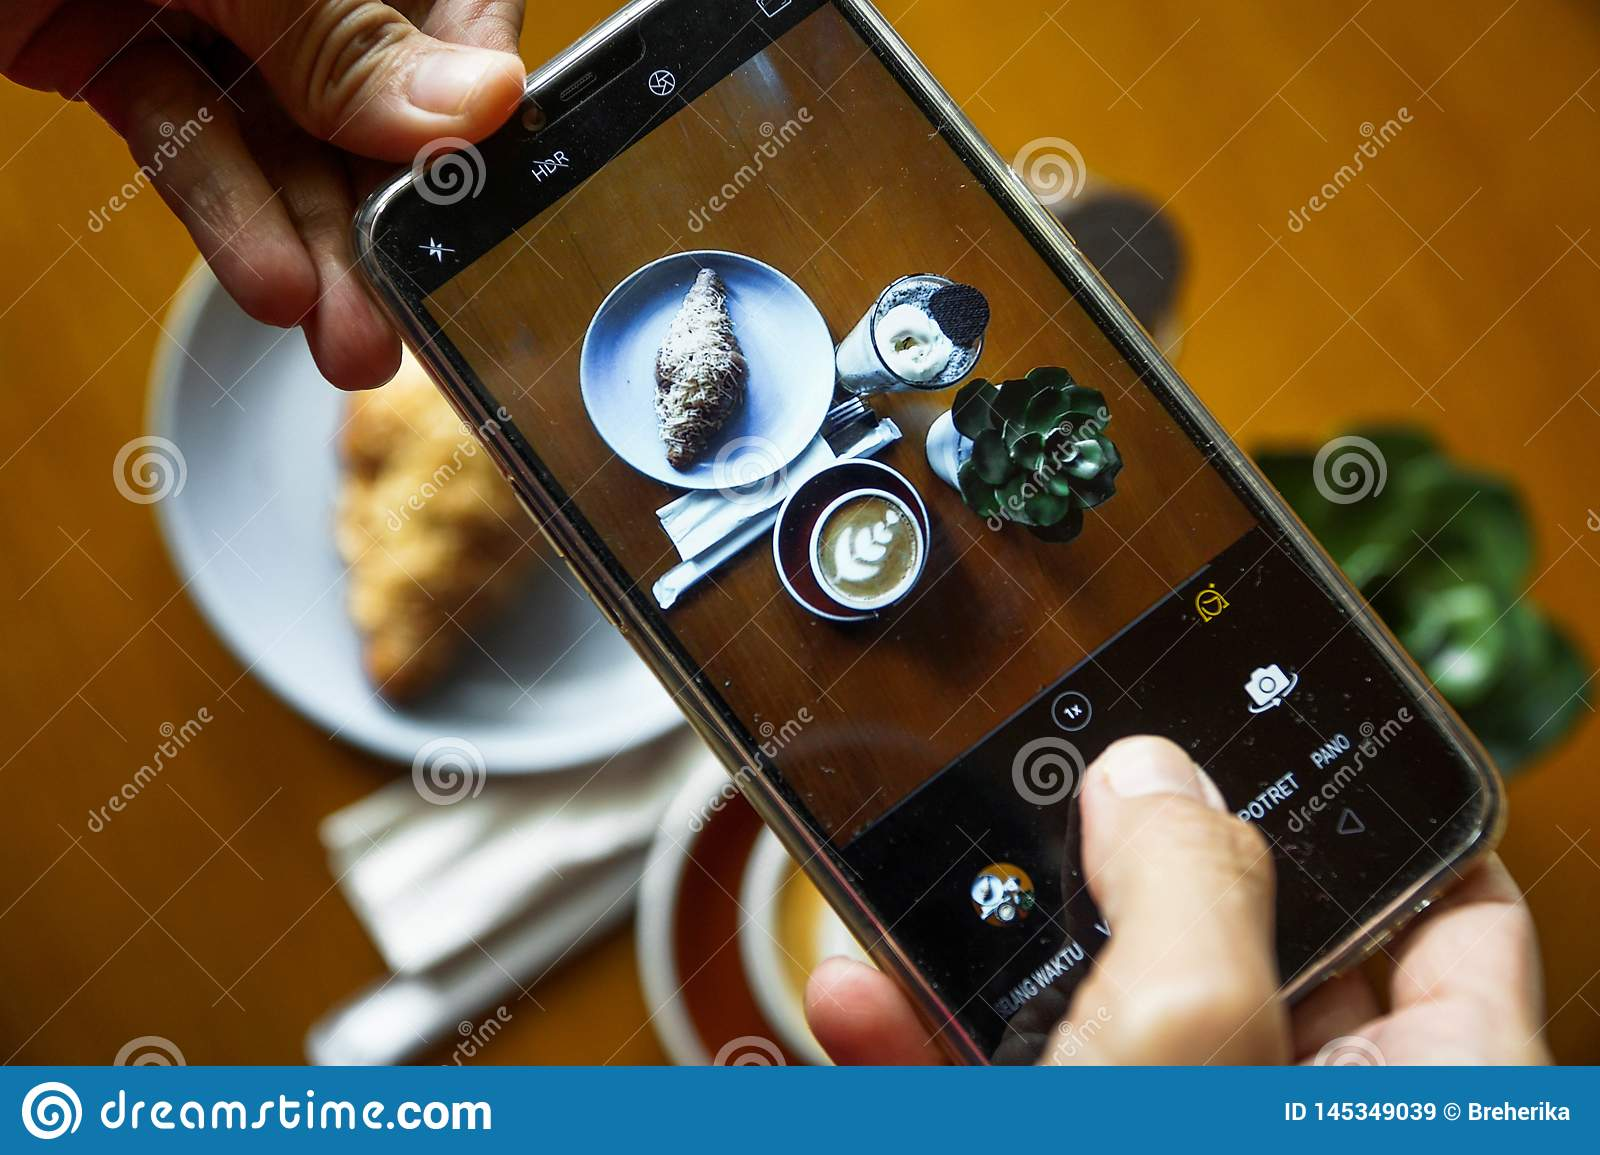 Food Photography Using Mobile Phone Product Photos Of Coffee Latte Croissant Chocolate And Blue Ocean Top View Photo Of Food Imagen De Archivo Imagen De Chocolate Photo 145349039